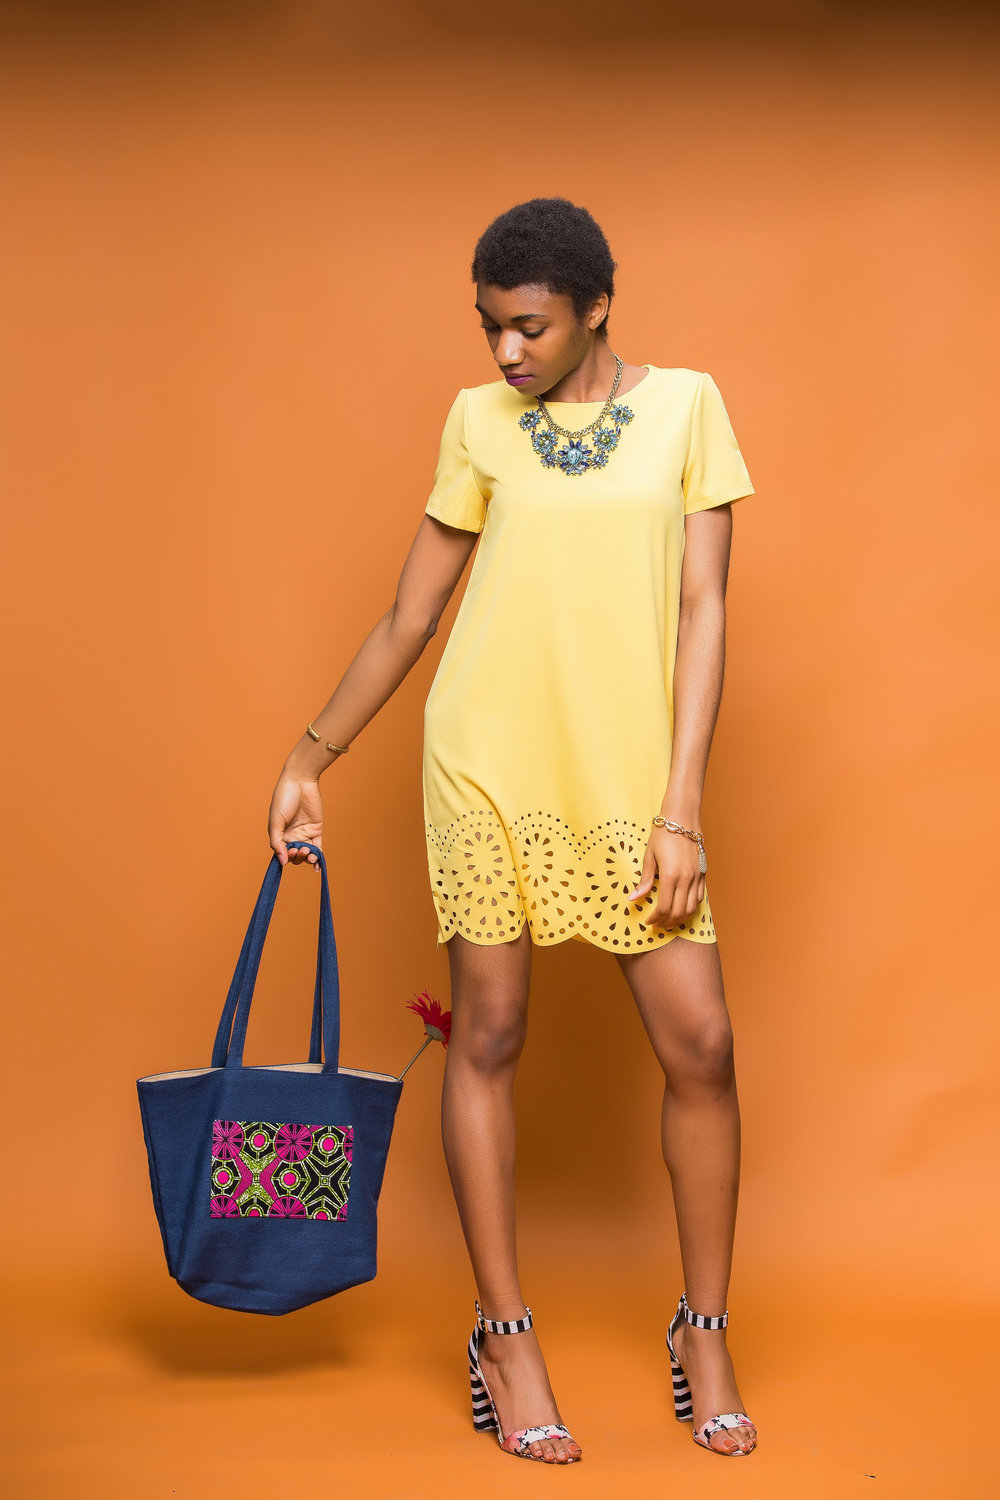 Tote by Inidara Brand. Use MEMKOH for 10% off any order